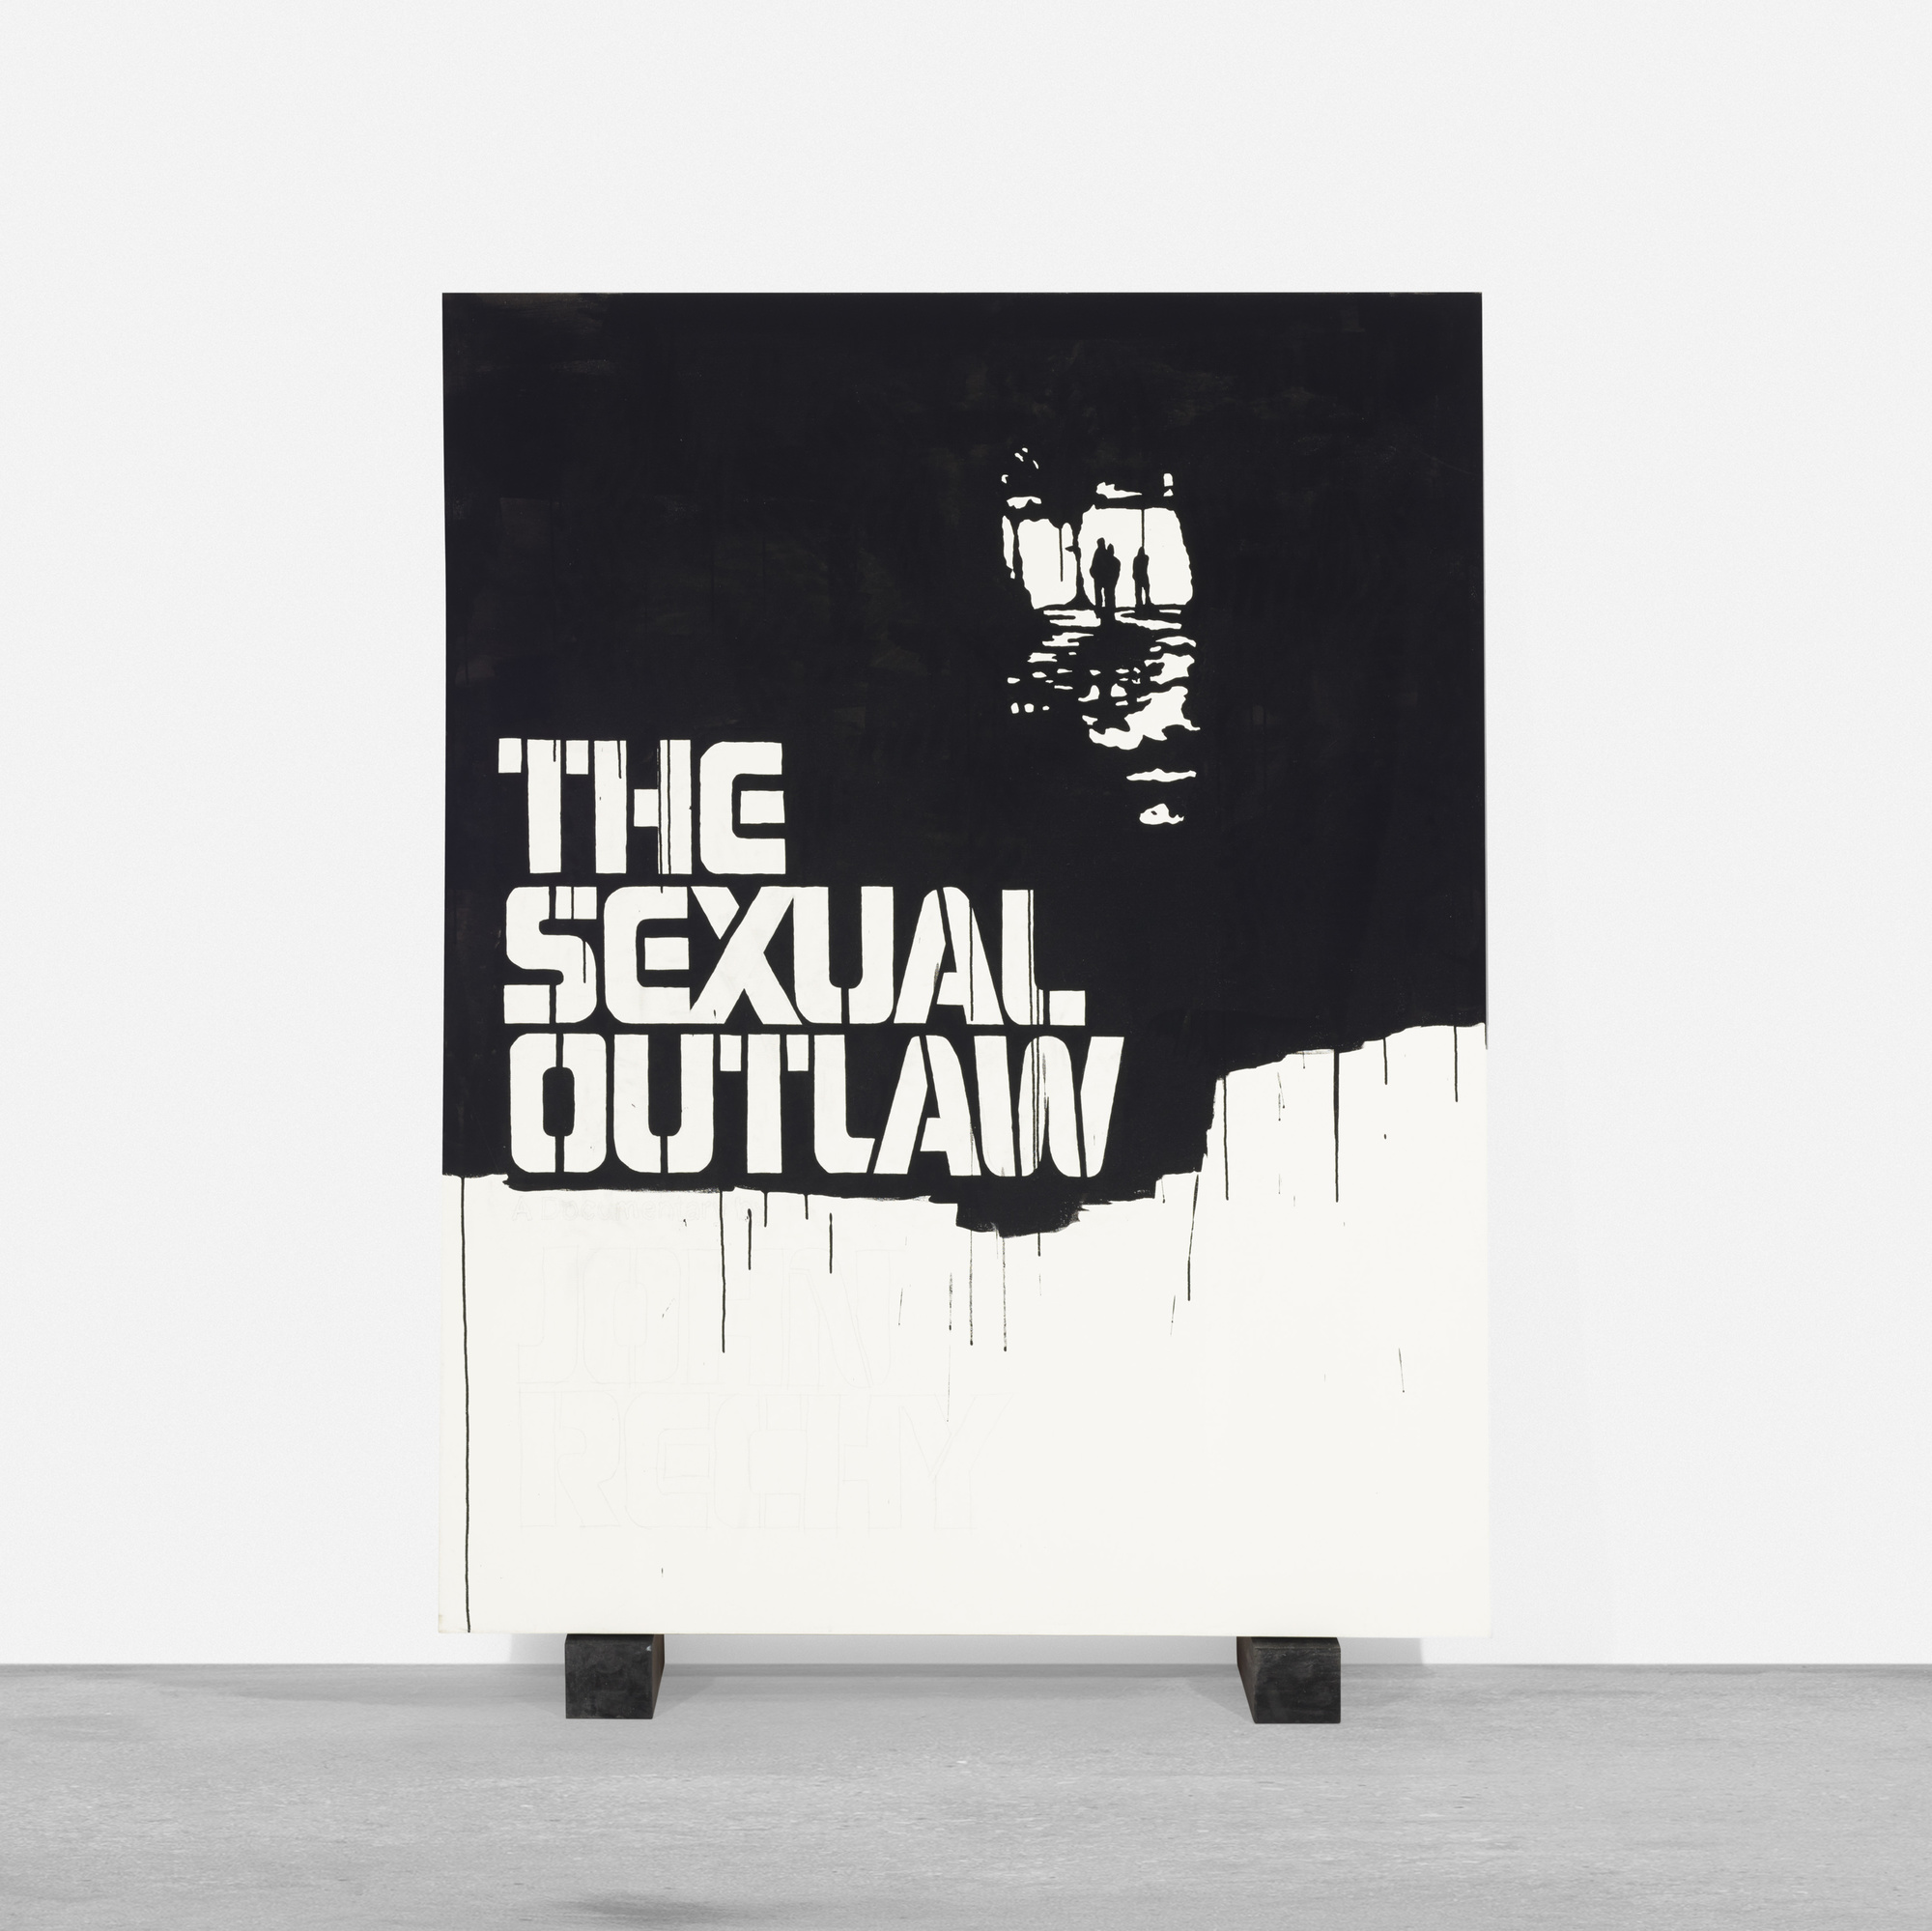 106: Gardar Eide Einarsson / The Sexual Outlaw (1 of 2)